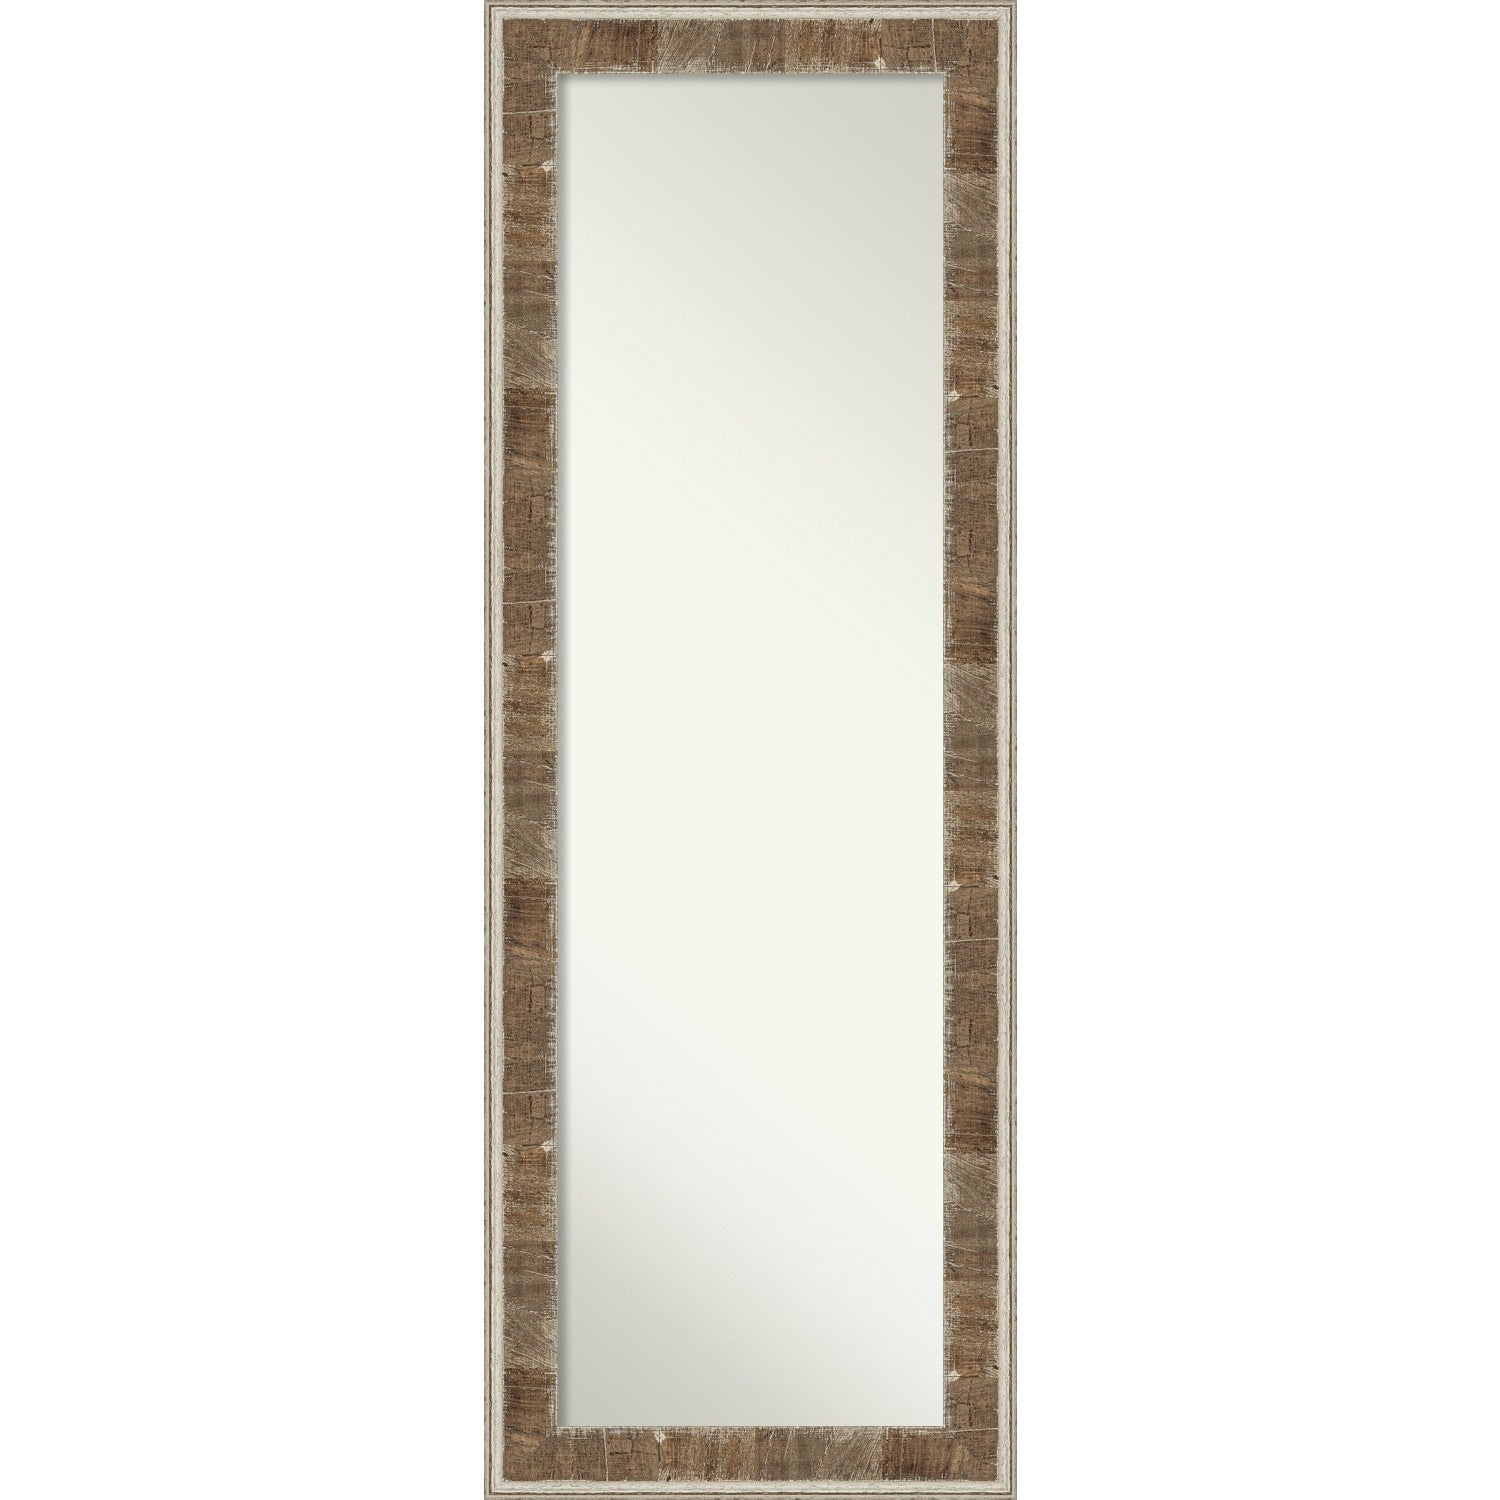 Farmhouse Brown Narrow Wood On The Door Full Length Wall Mirror 52 75 X 18 0 901 Inches Deep